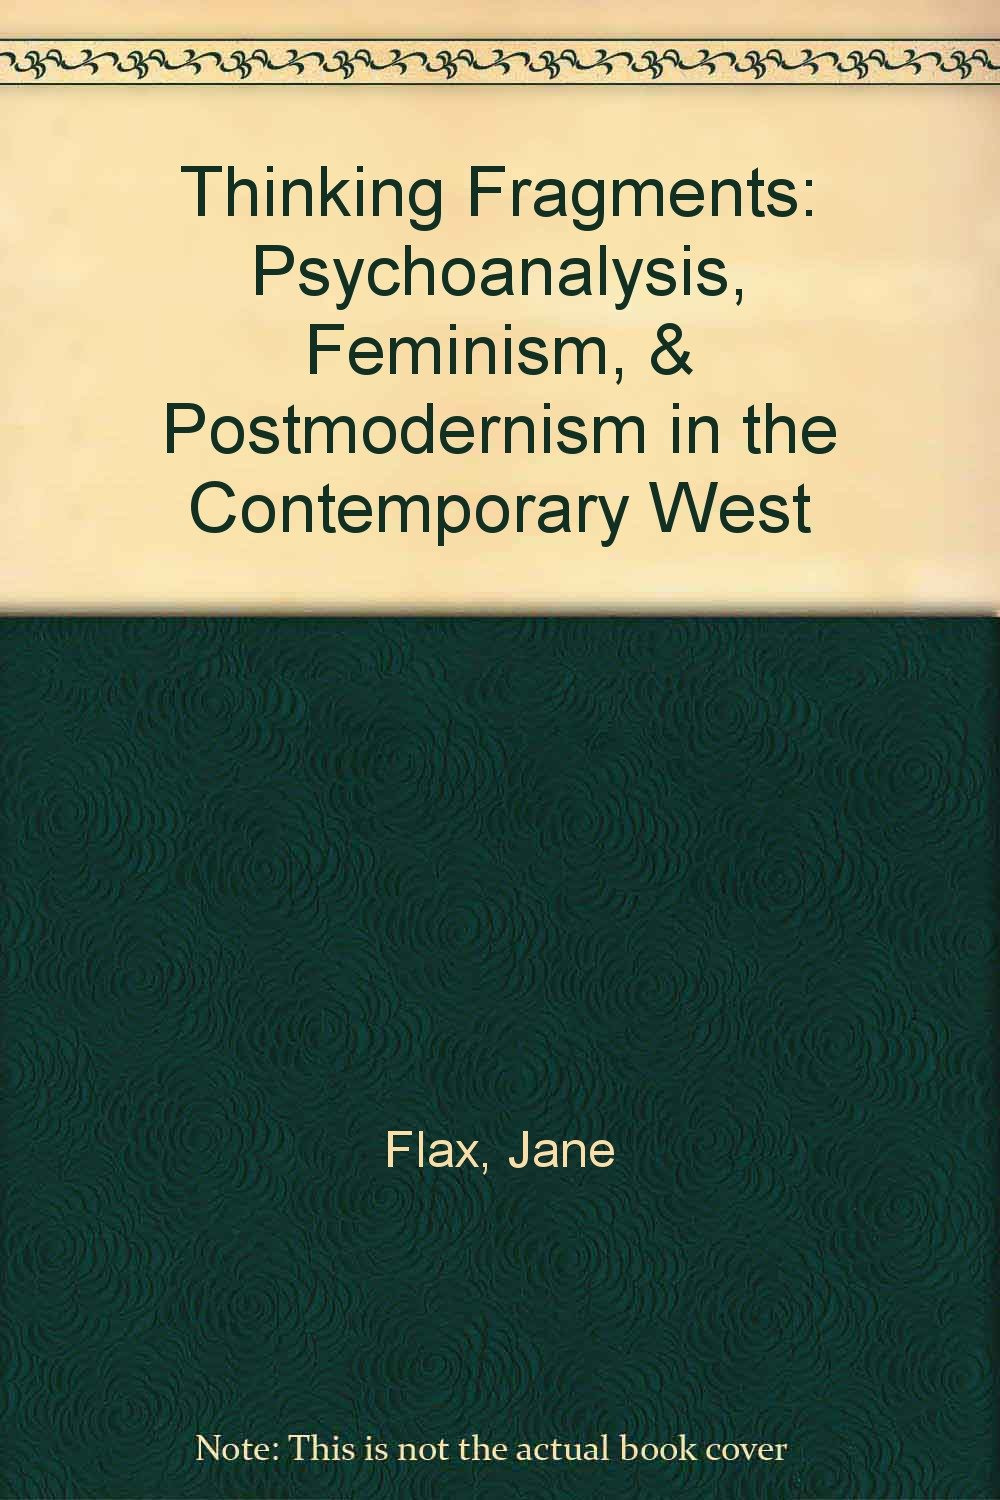 Thinking Fragments: Psychoanalysis, Feminism, and Postmodernism in the Contemporary West